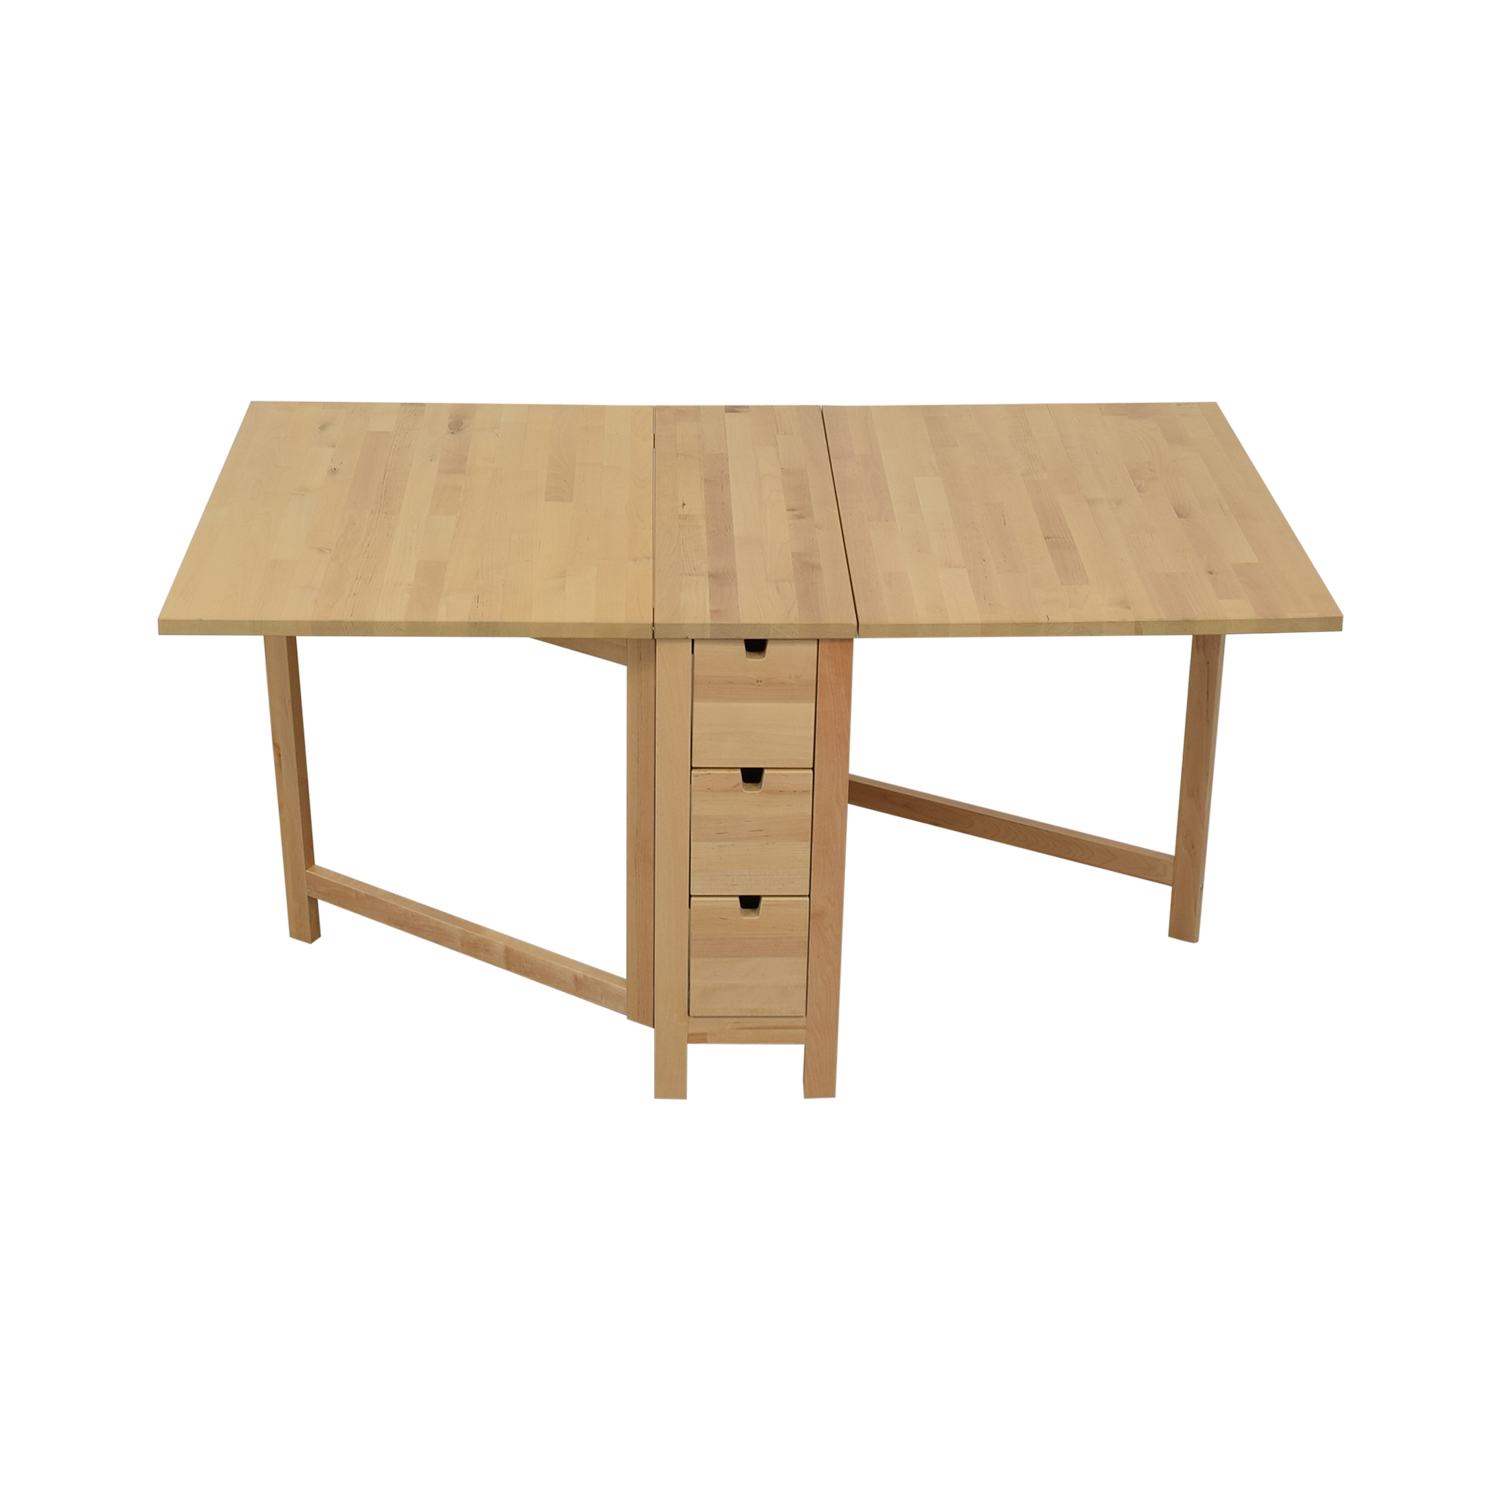 Folding Wooden Table Ikea 58 Off Ikea Ikea Norden Gateleg Folding Table With Storage Drawers Tables